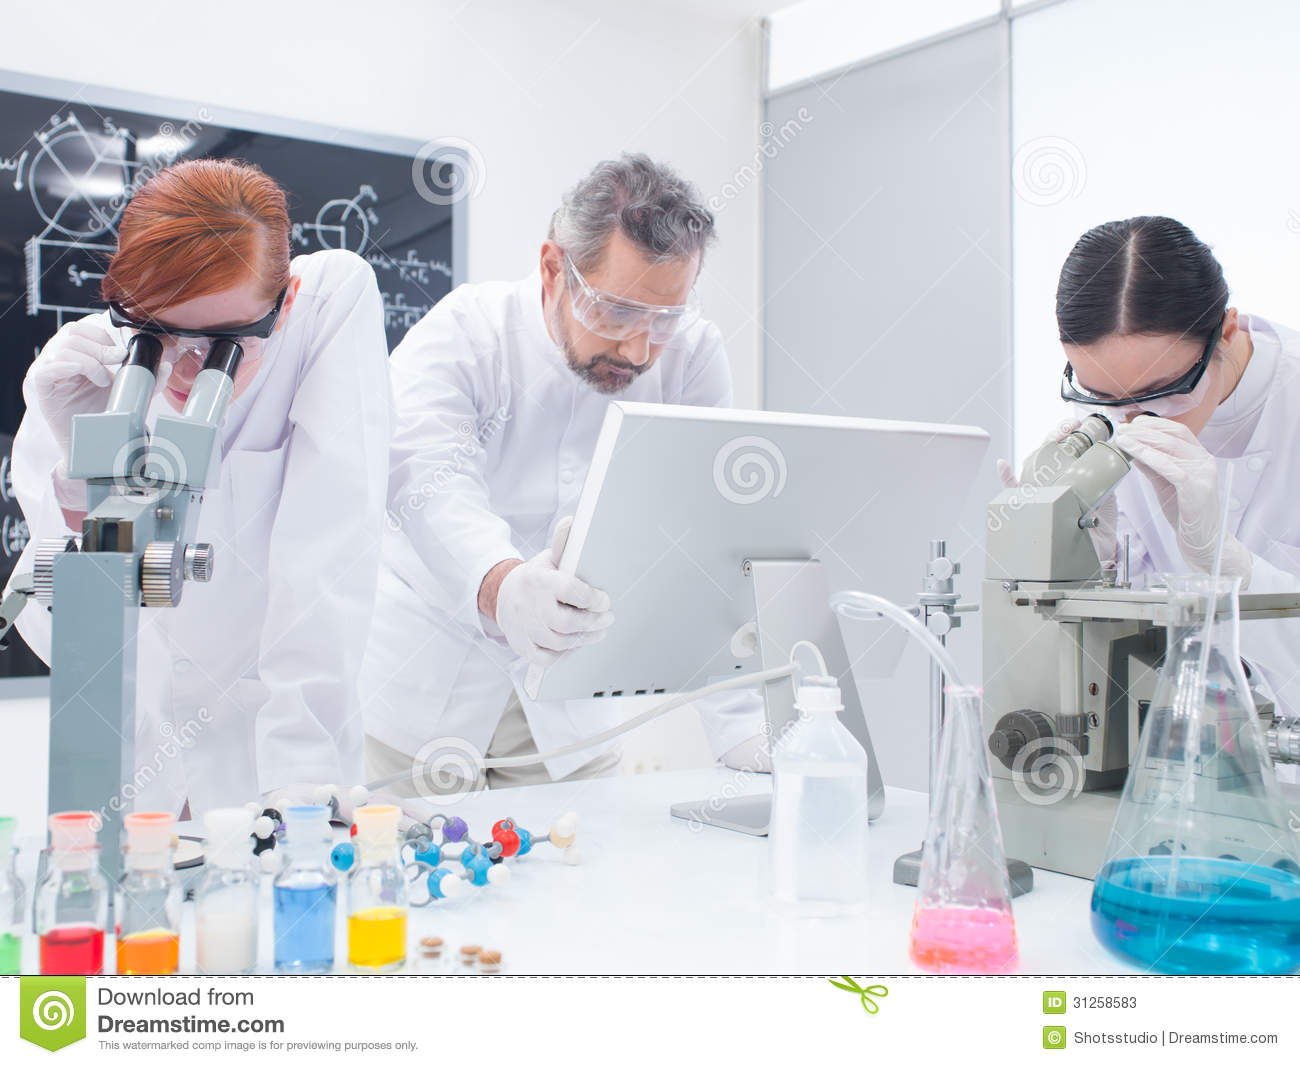 an analysis of the chemistry experiment In this experiment, we will make 3 simple toothpaste formulations and evaluate them, along with some.